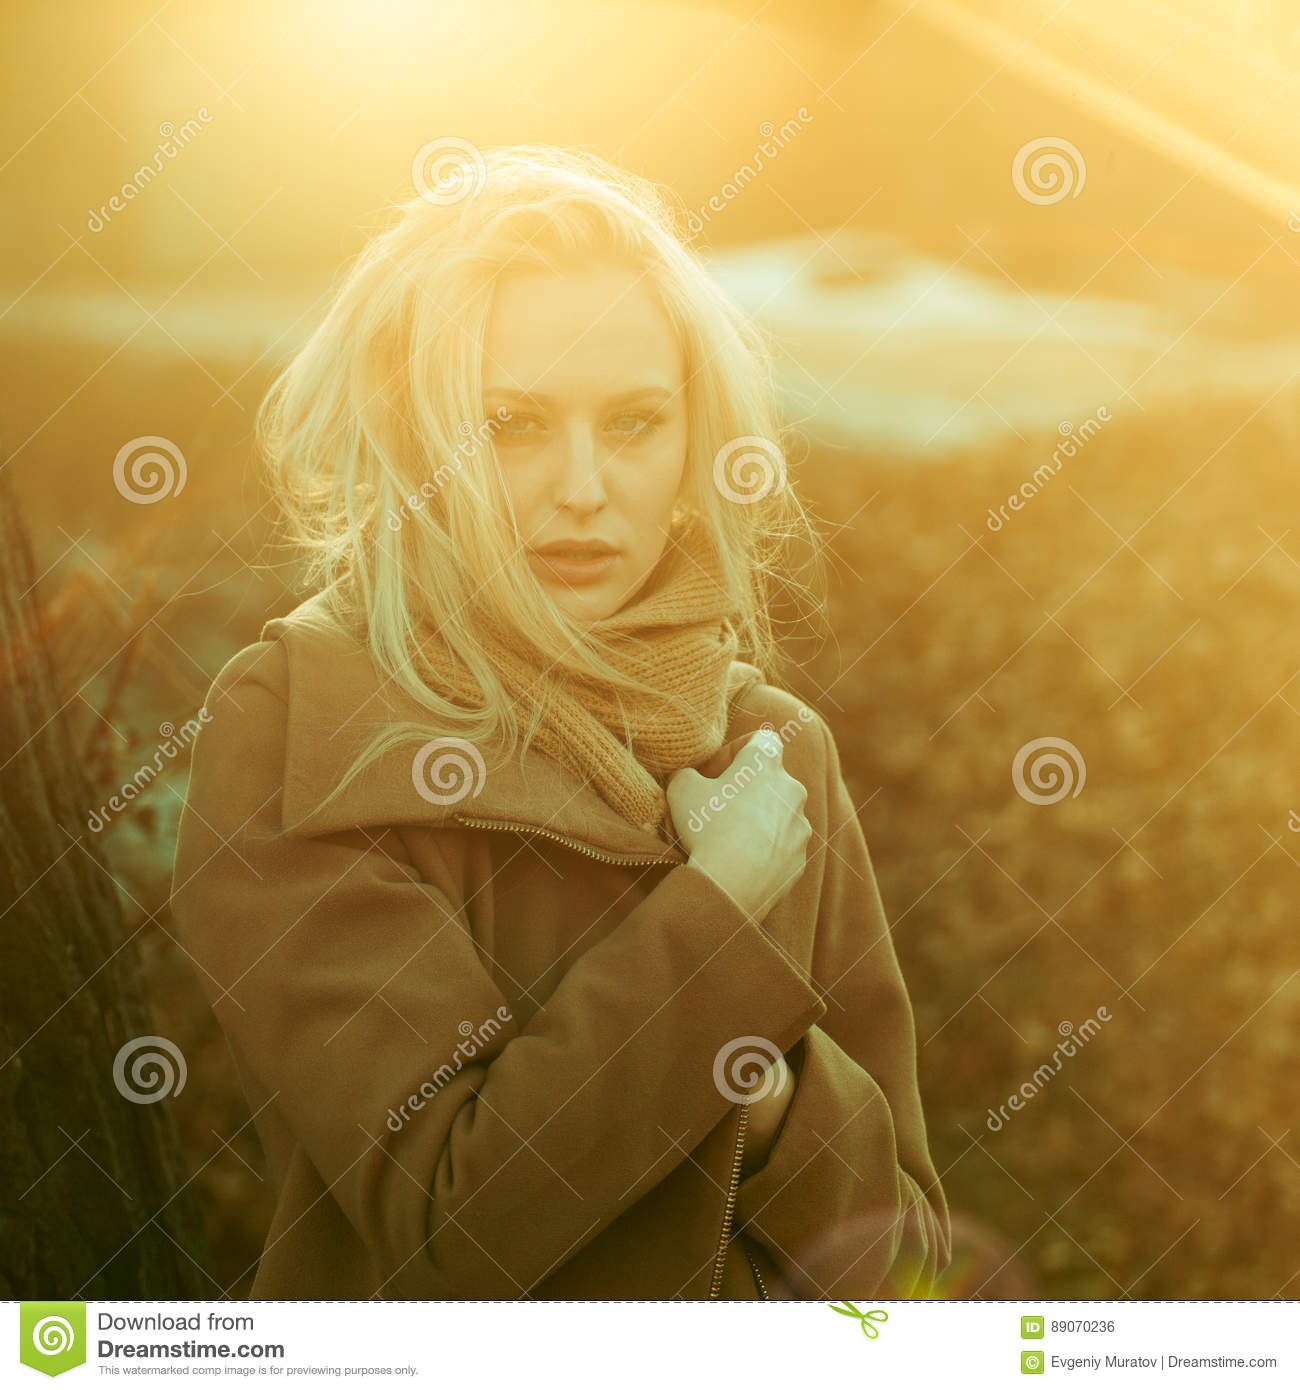 Beautiful girl in a coat posing against the background of a spring nature